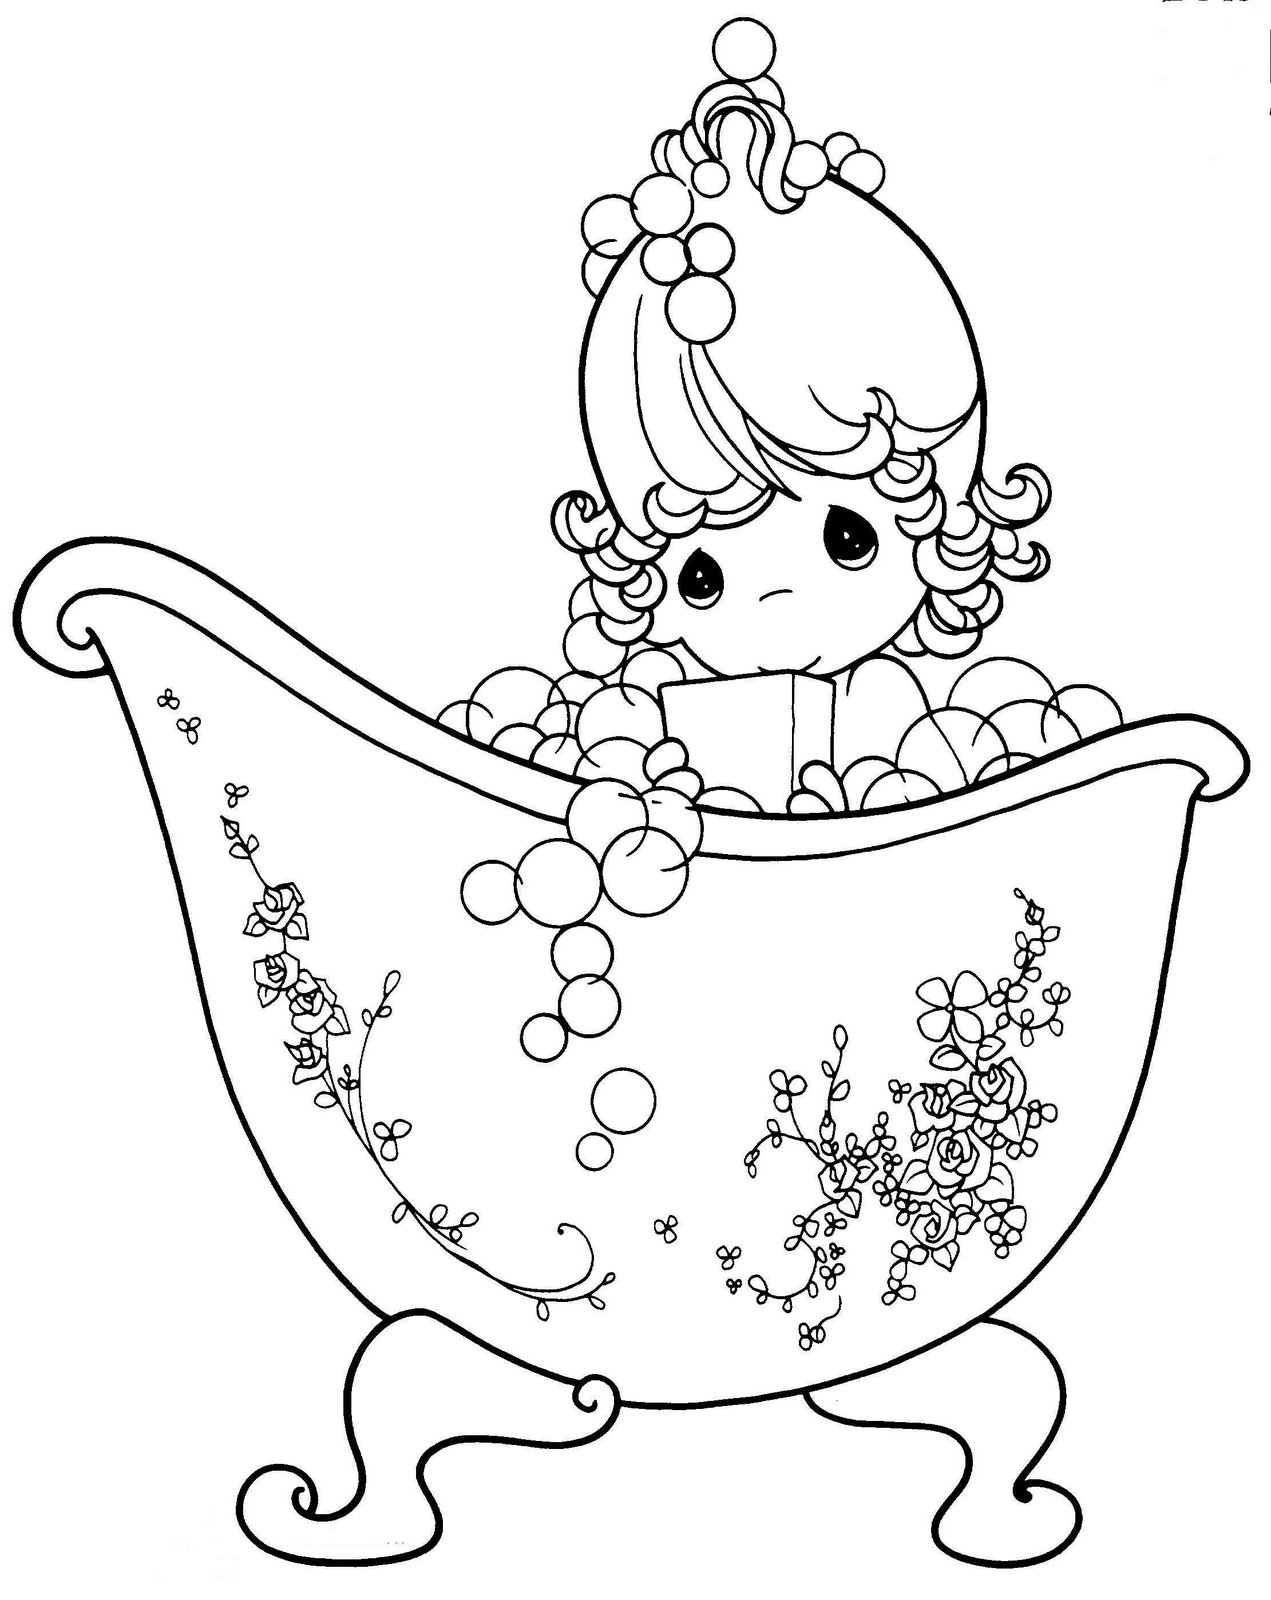 Bathing Girl of the precious moments coloring ~ Child Coloring